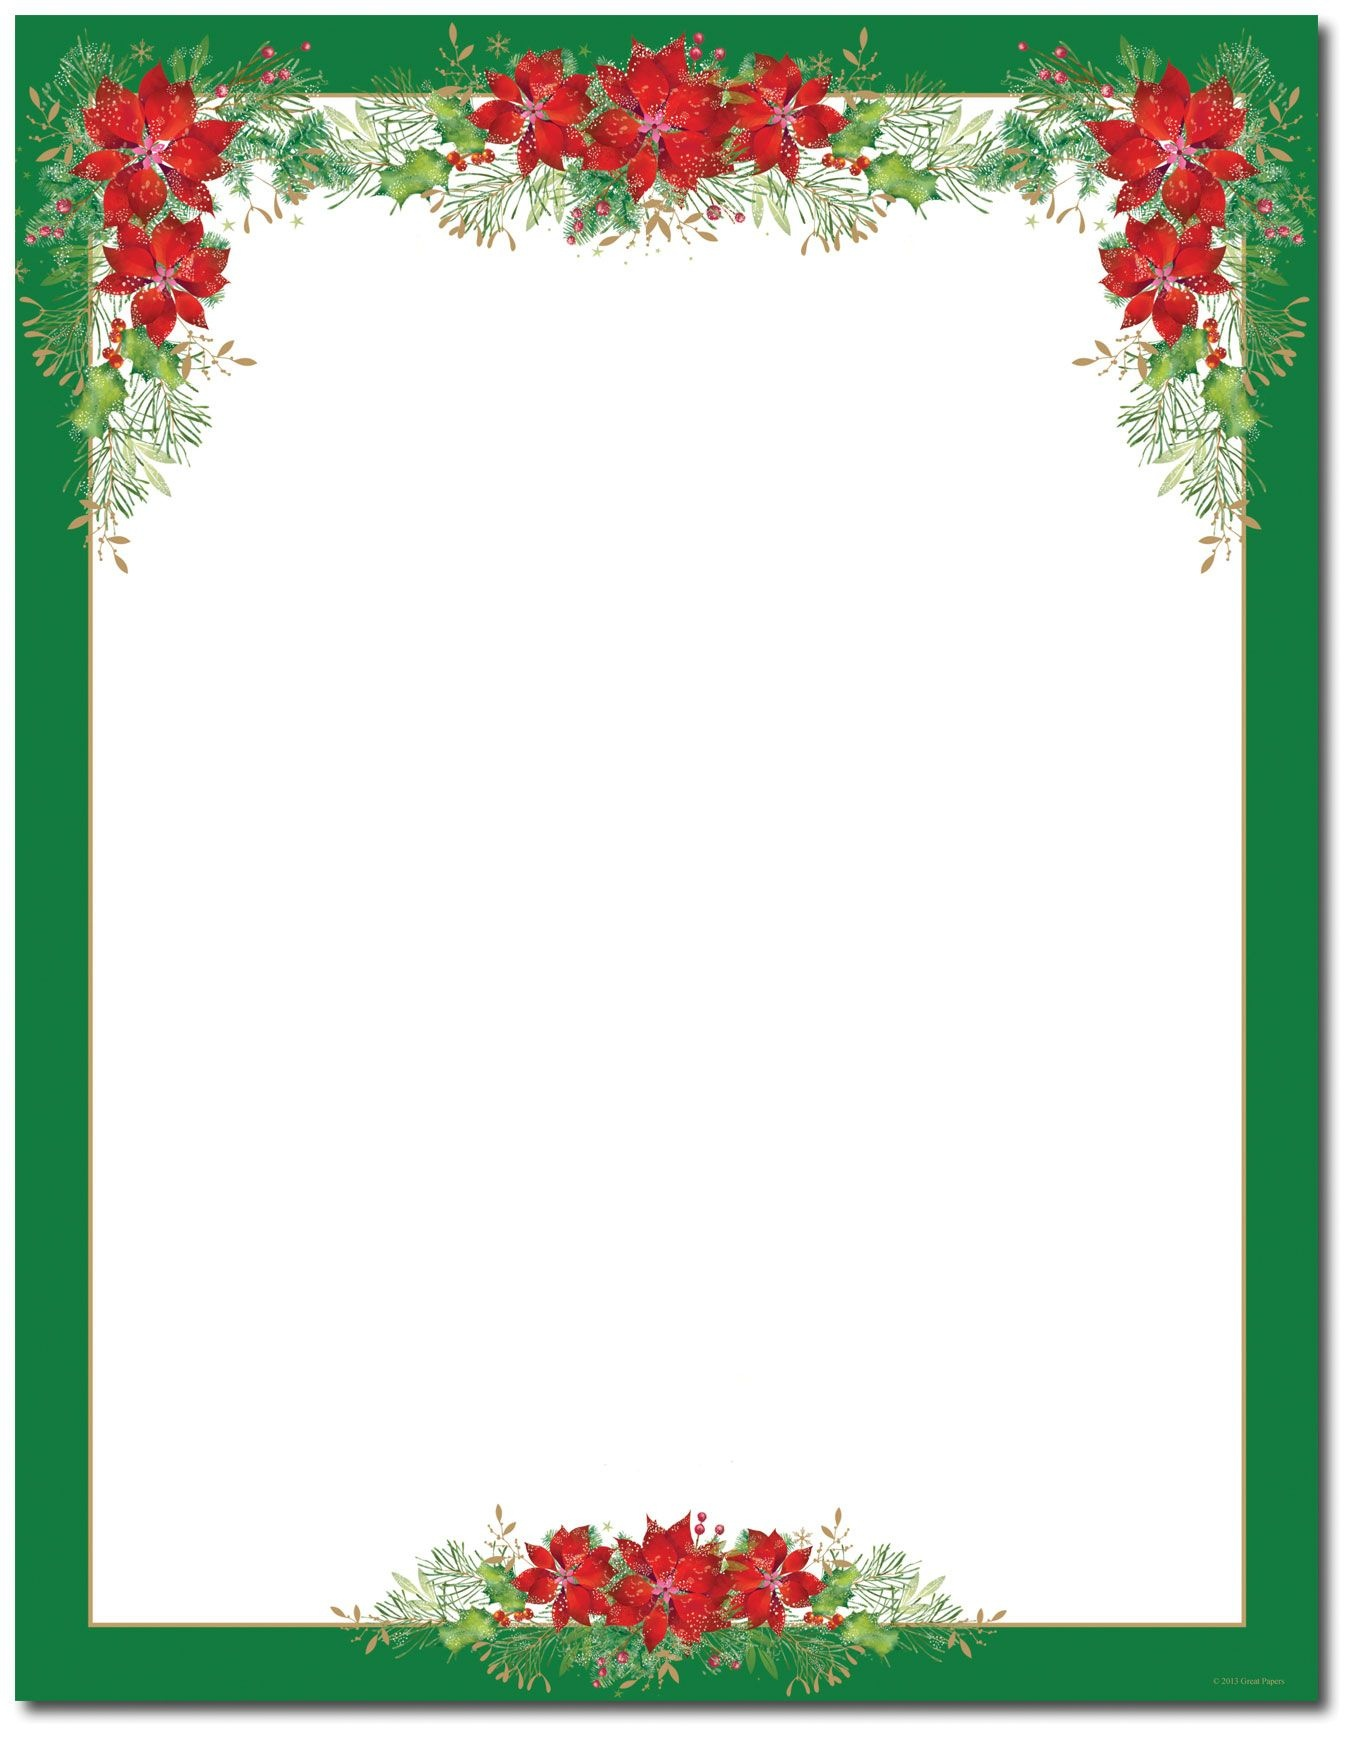 Poinsettia Valance Letterhead | Holiday Papers | Christmas Border - Free Printable Christmas Stationary